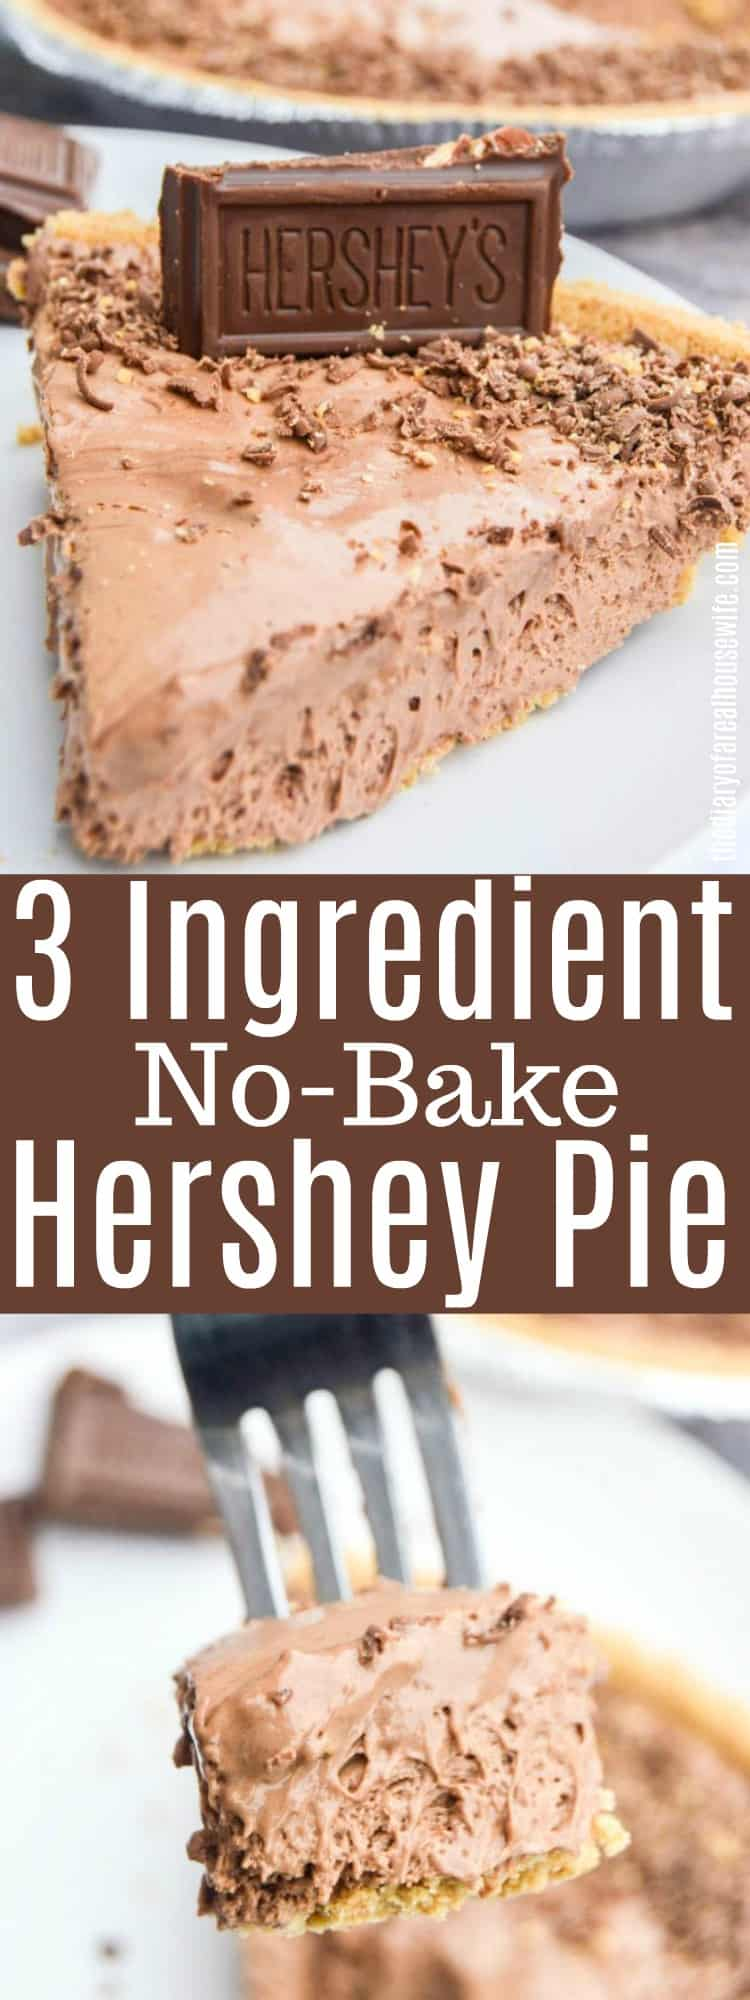 3 Ingredient No-Bake Hershey Pie